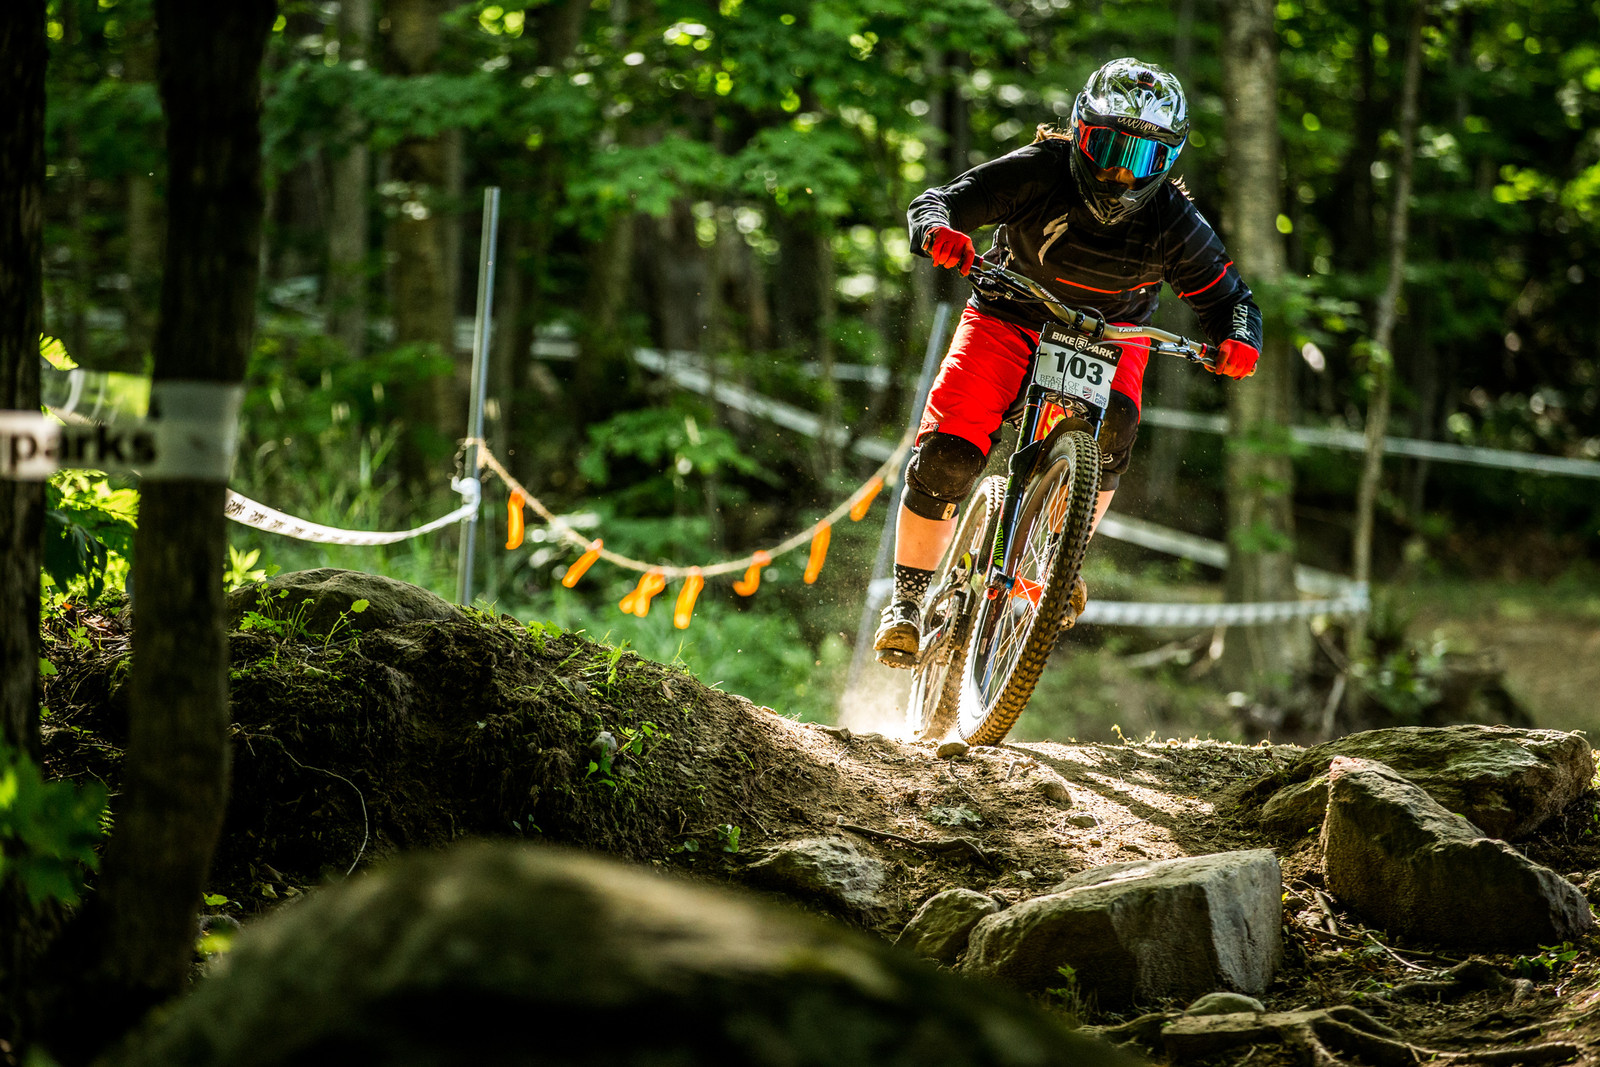 Angelina Palermo retains her points lead in the Pro GRT Pro Women's field with a 3rd place at Killington.